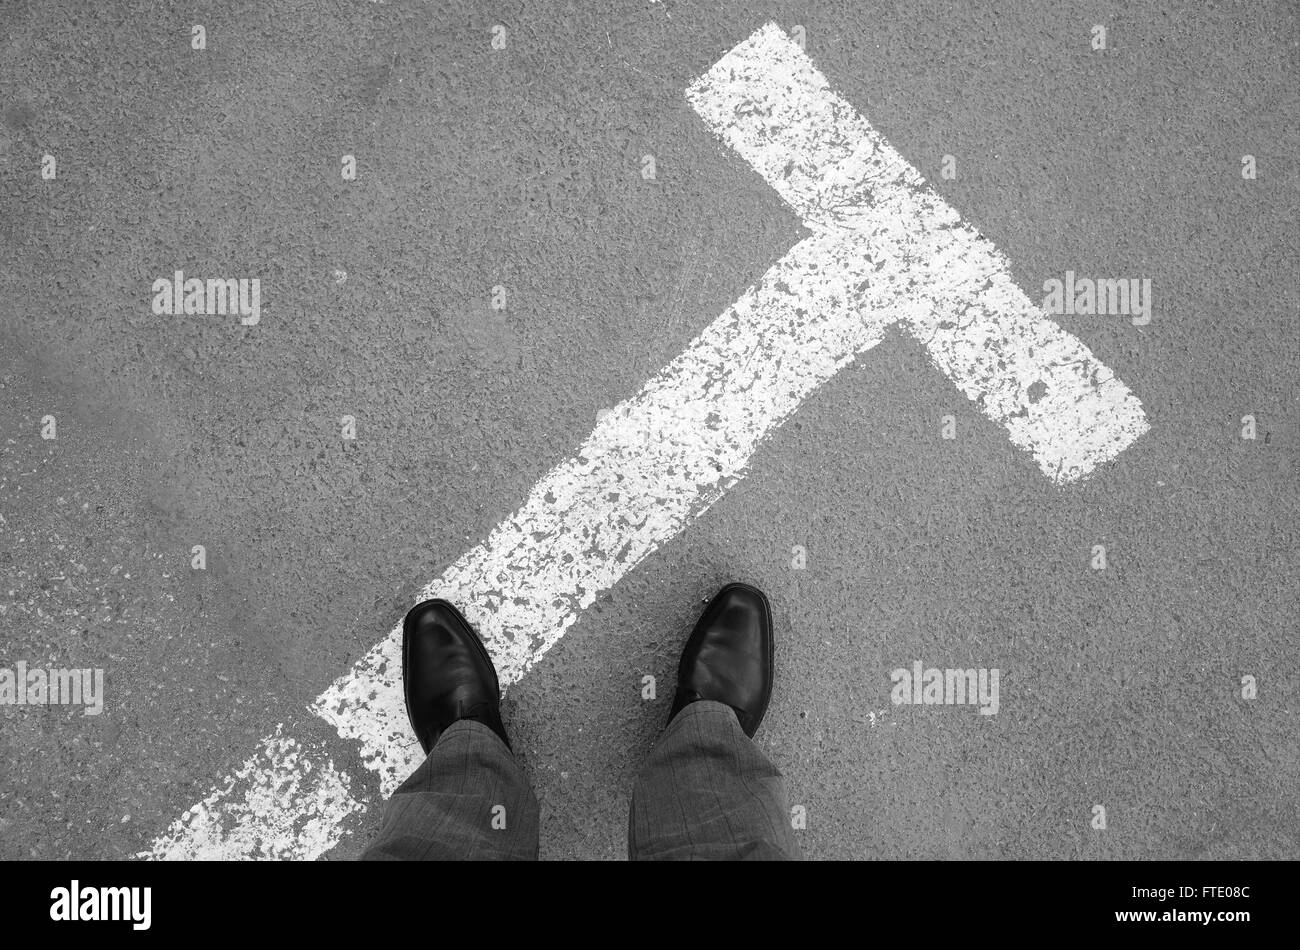 Urbanite man in black new shining leather shoes standing on asphalt pavement with parking lot road marking - Stock Image